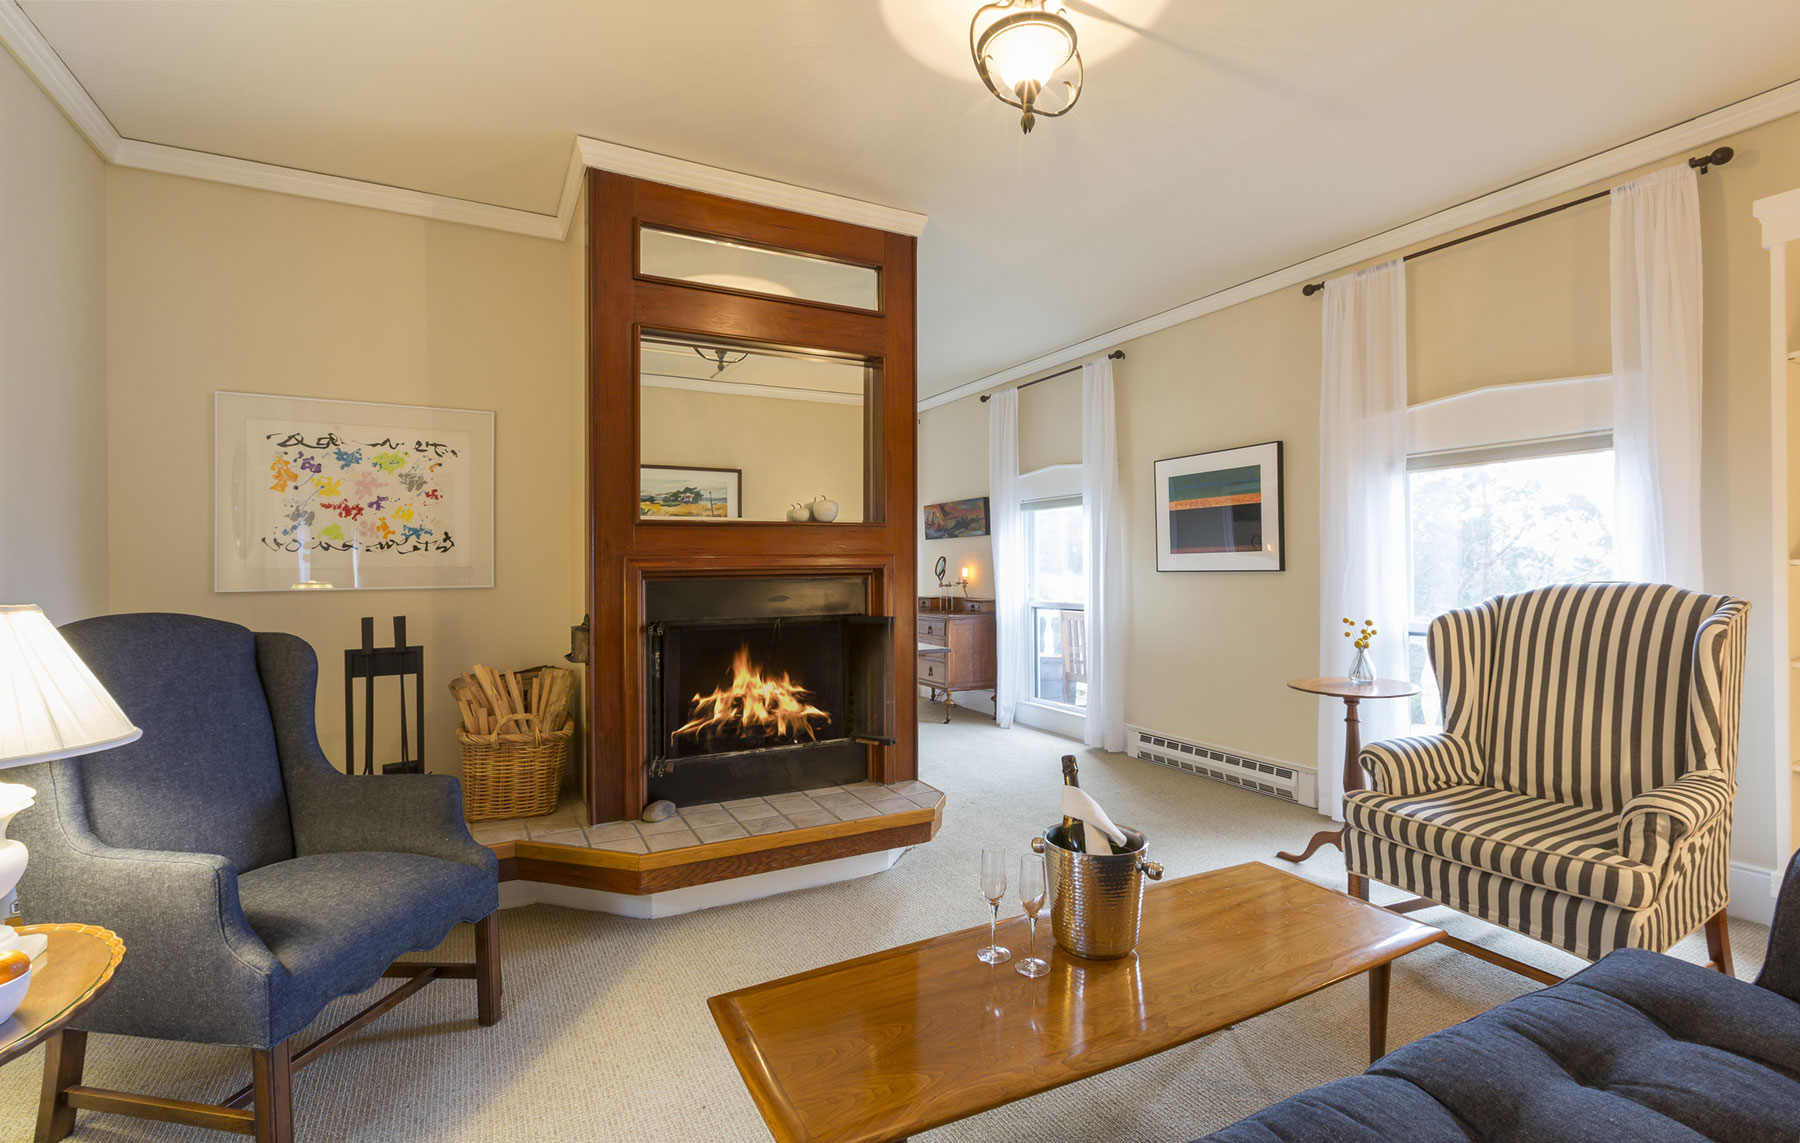 The Bayview Suite room with sitting area by a crackling fire.